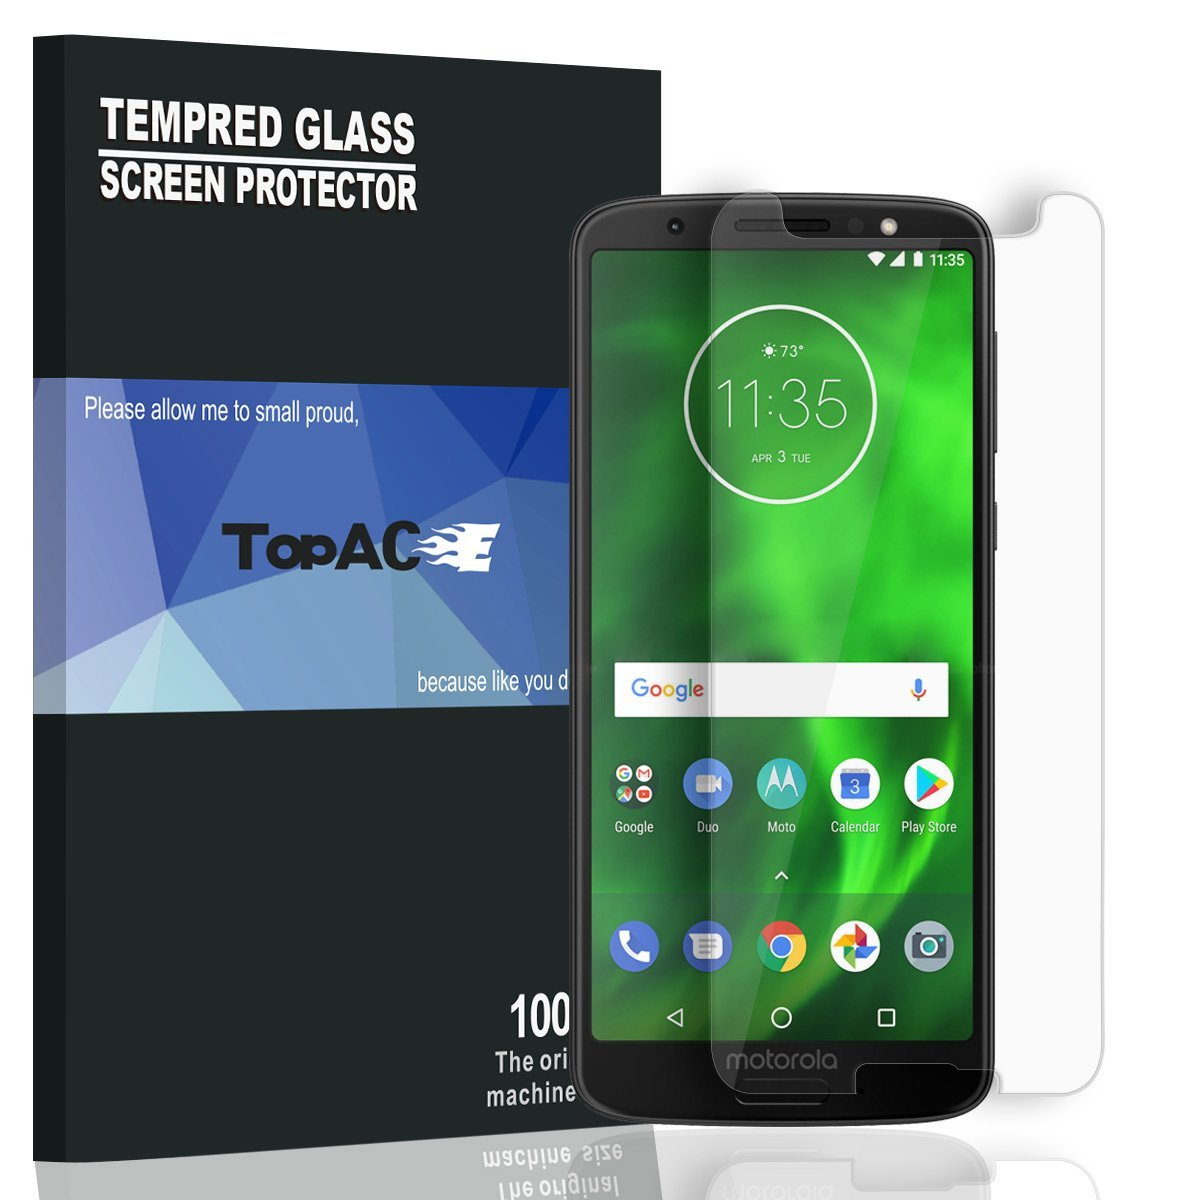 topace-moto-g6-tempered-glass-press.jpg